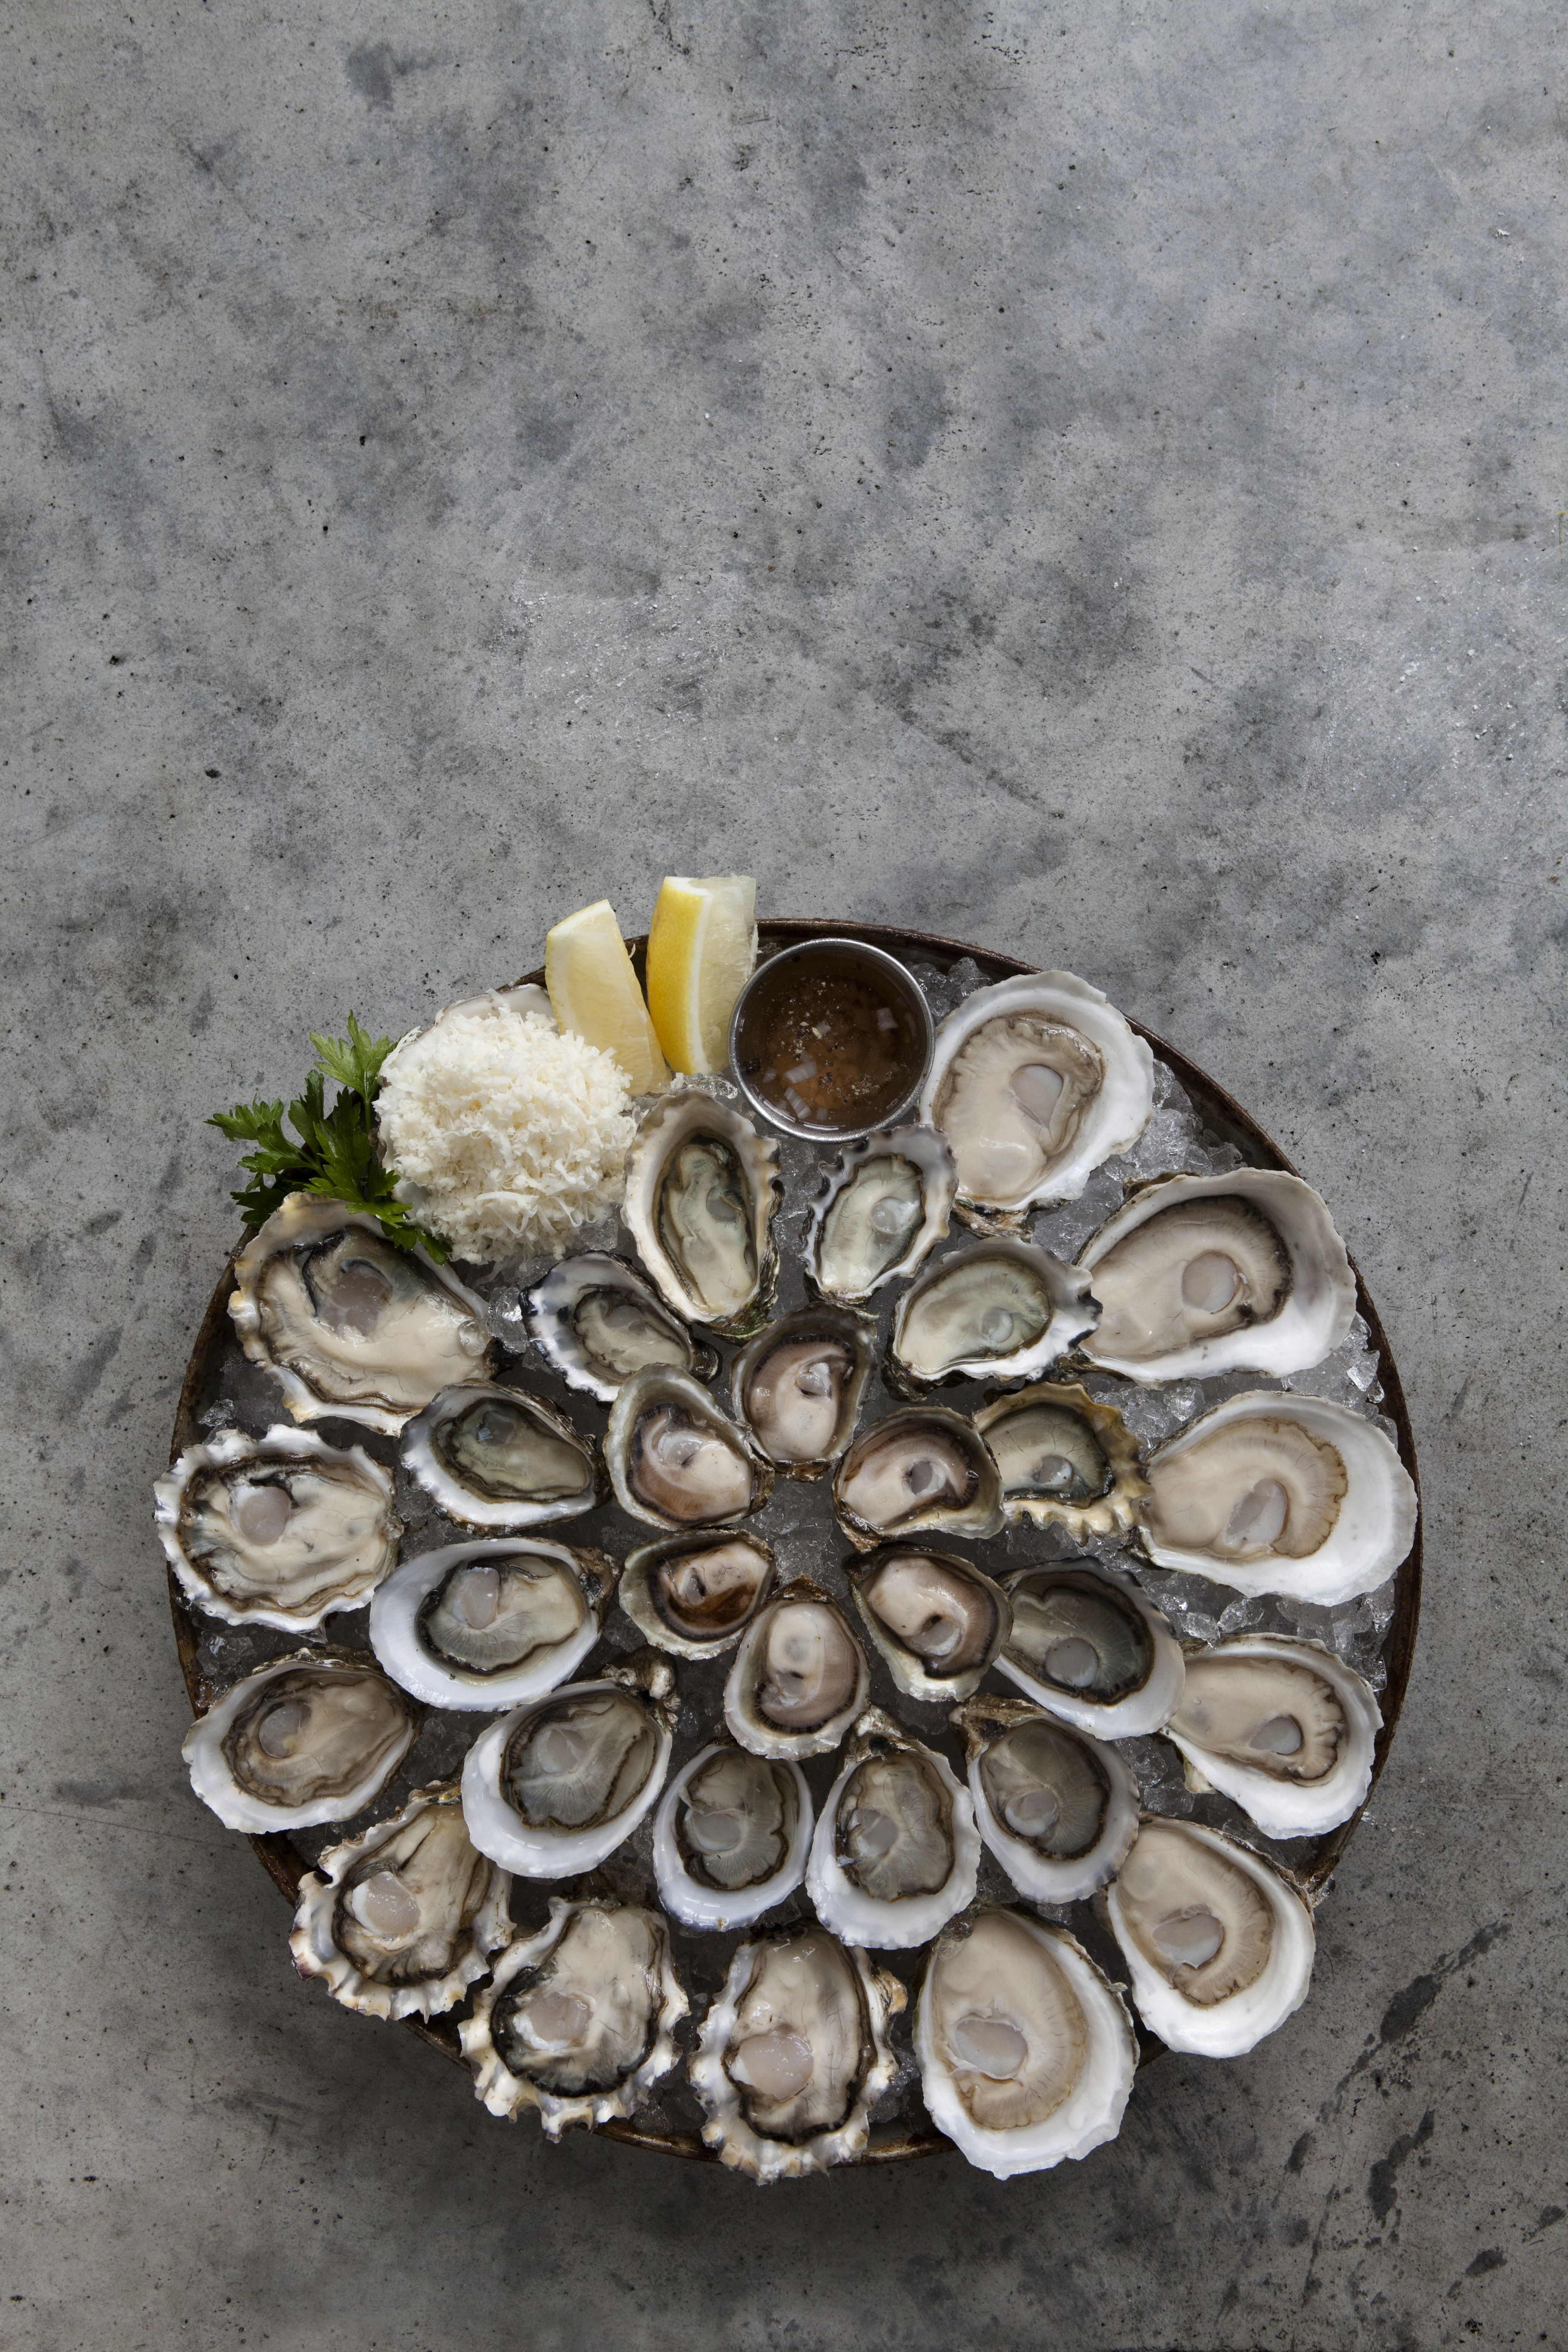 Welcome To Taylor Shellfish Farms of Shelton, WA - The Best Clams ...